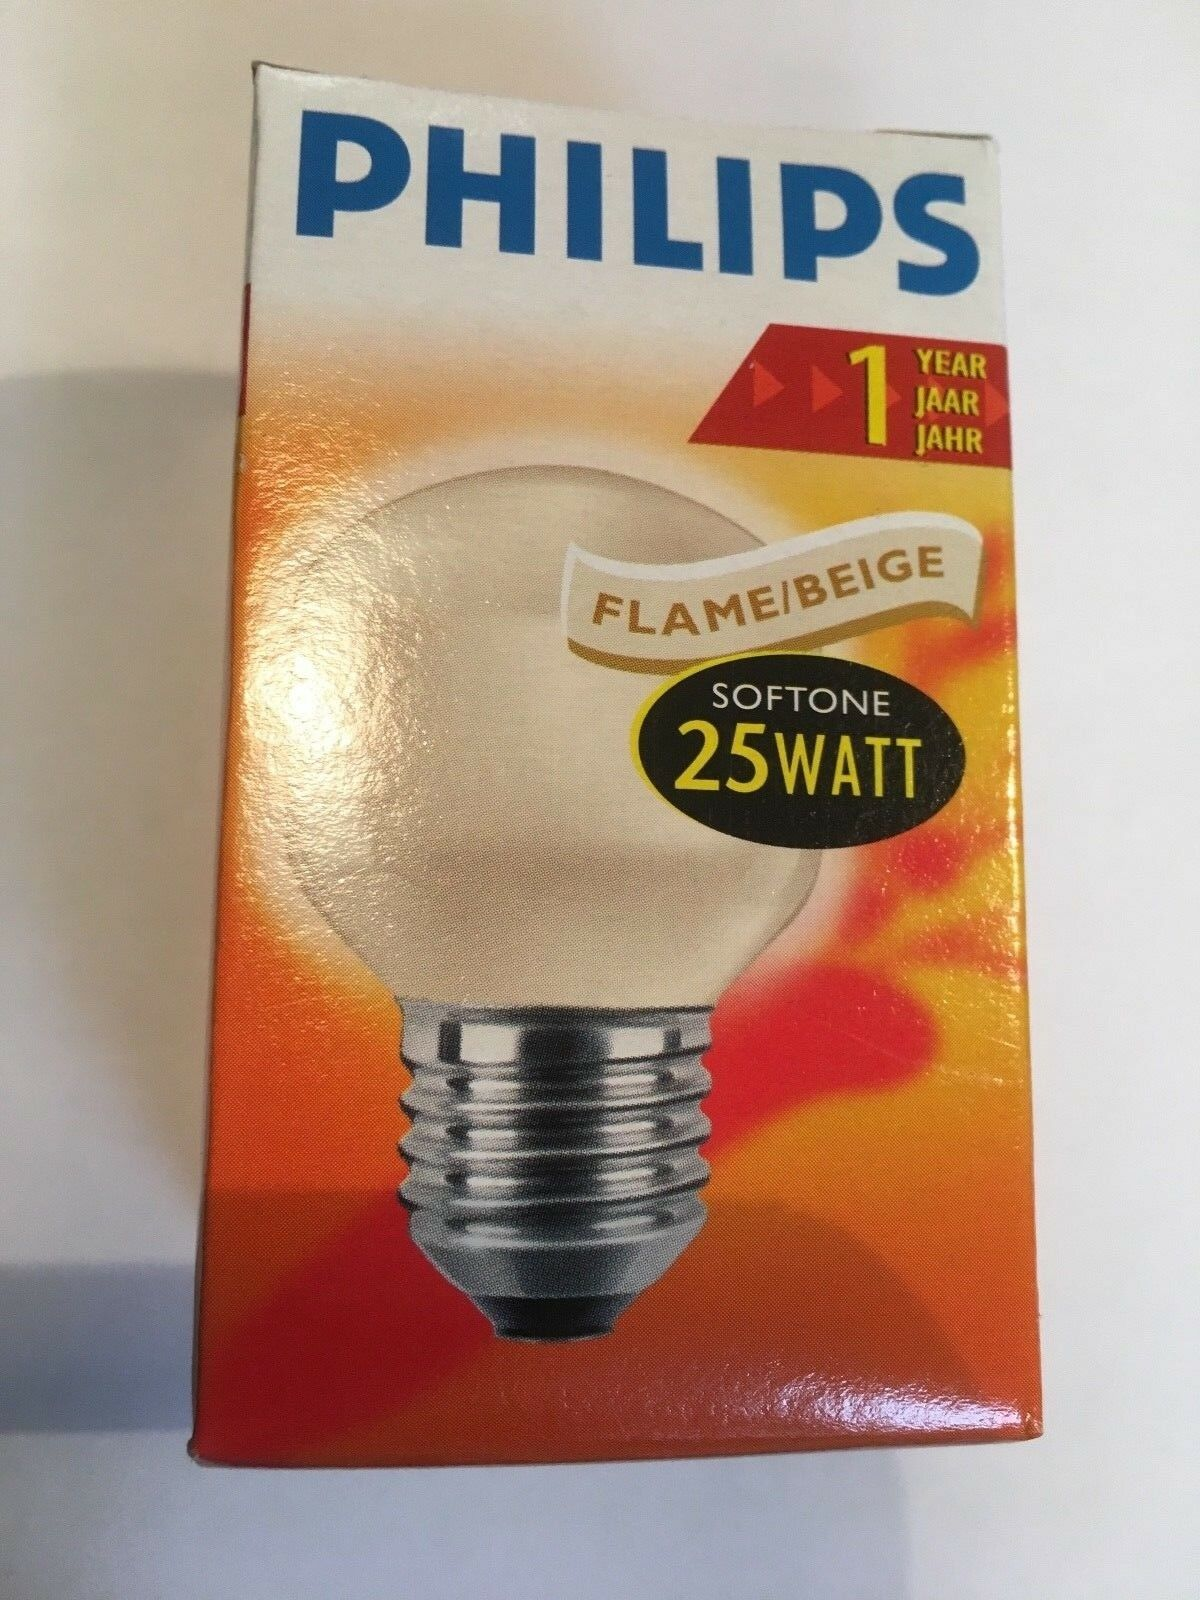 Philips Softone Flame Rare Philips 40w Softone T45 1 Year 1000 Hours Flame Beige E27 Drops